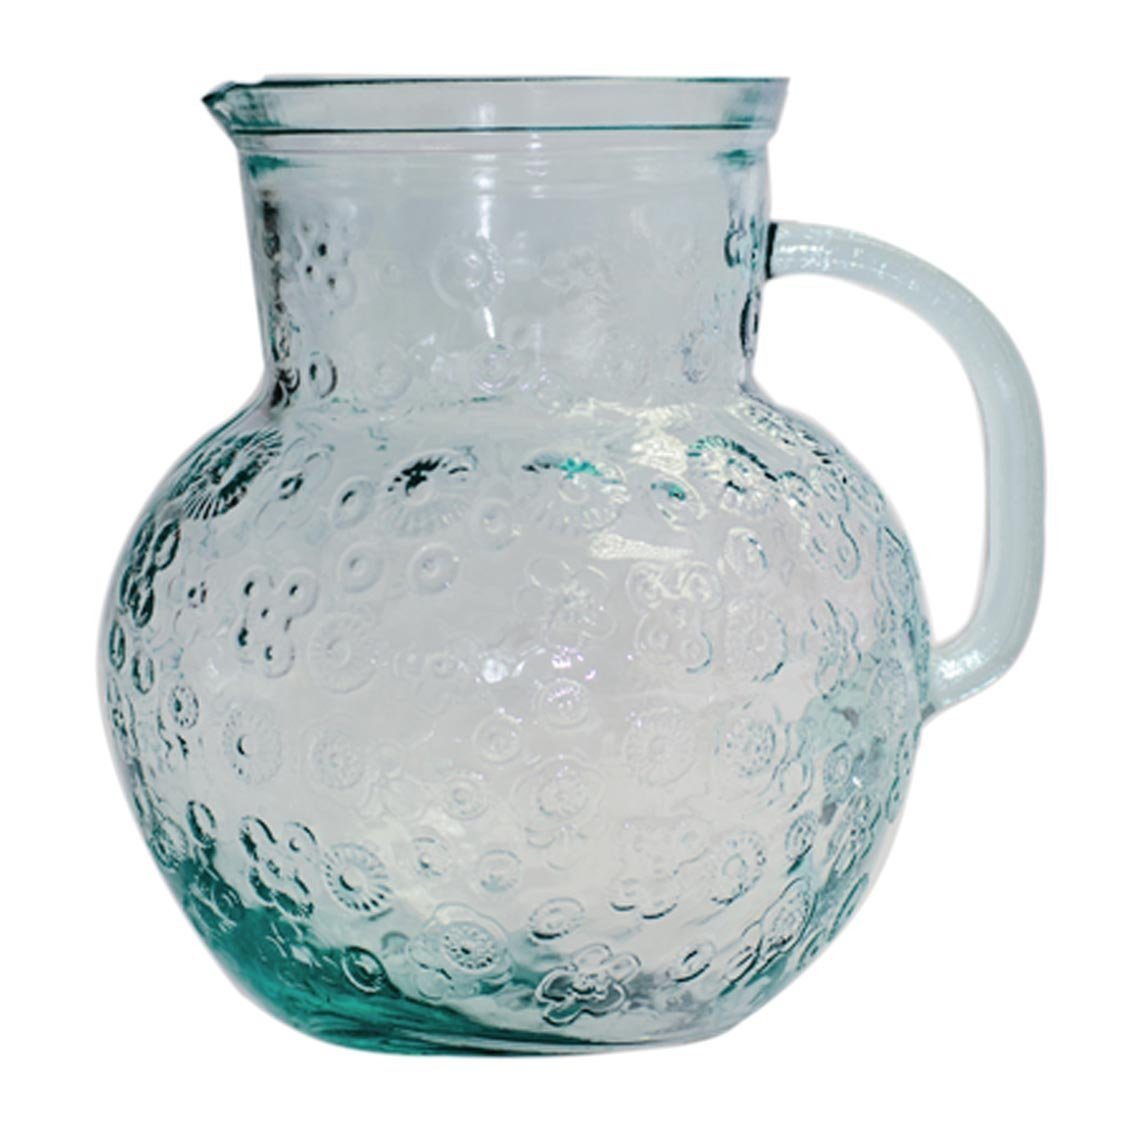 San Miguel Recycled Glass Vase Of San Miguel Flora Pitcher 2 3l Made In Spain From Recycled Glass Regarding San Miguel Flora Pitcher 2 3l